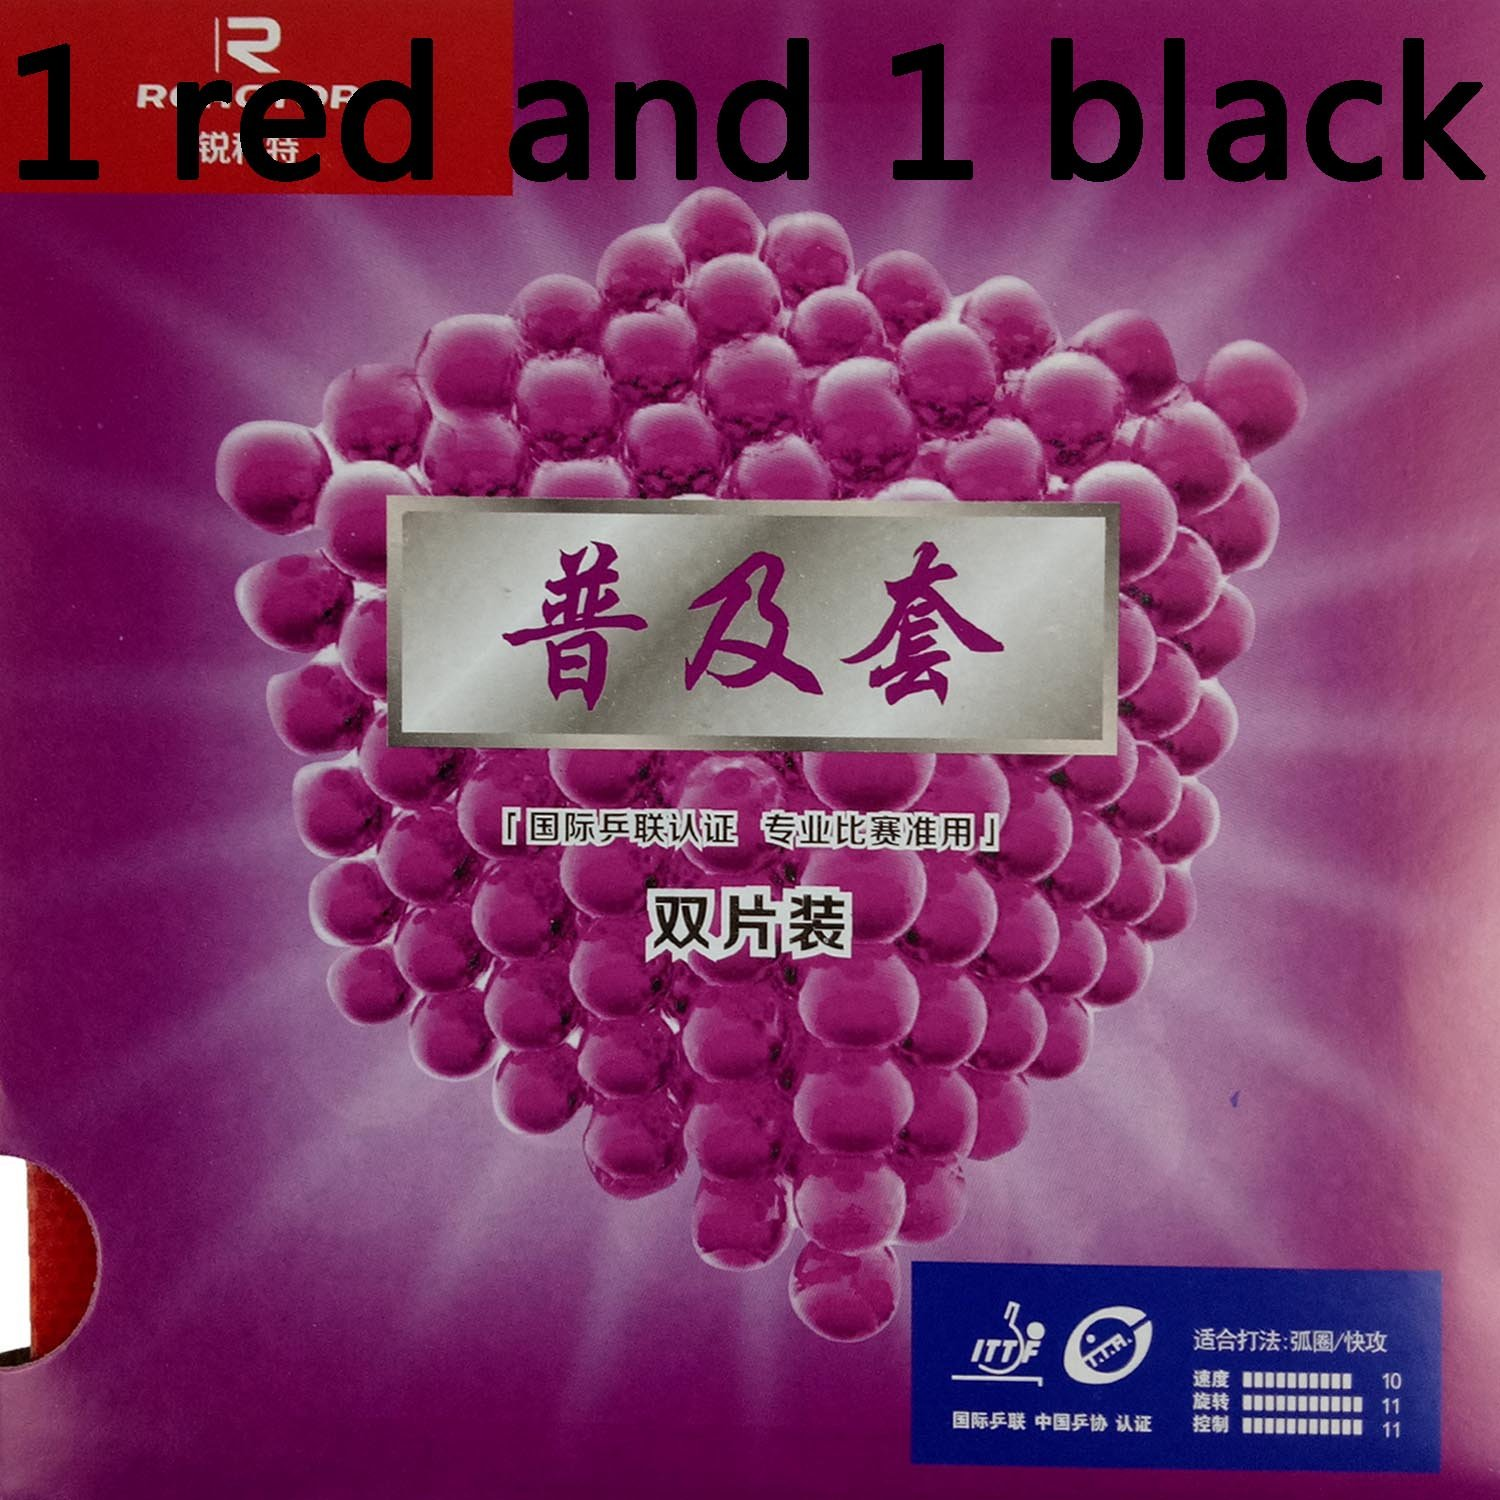 2x Reactor Corbor Loop PLUS Attack Pips in Table Tennis Rubber Sheet product image